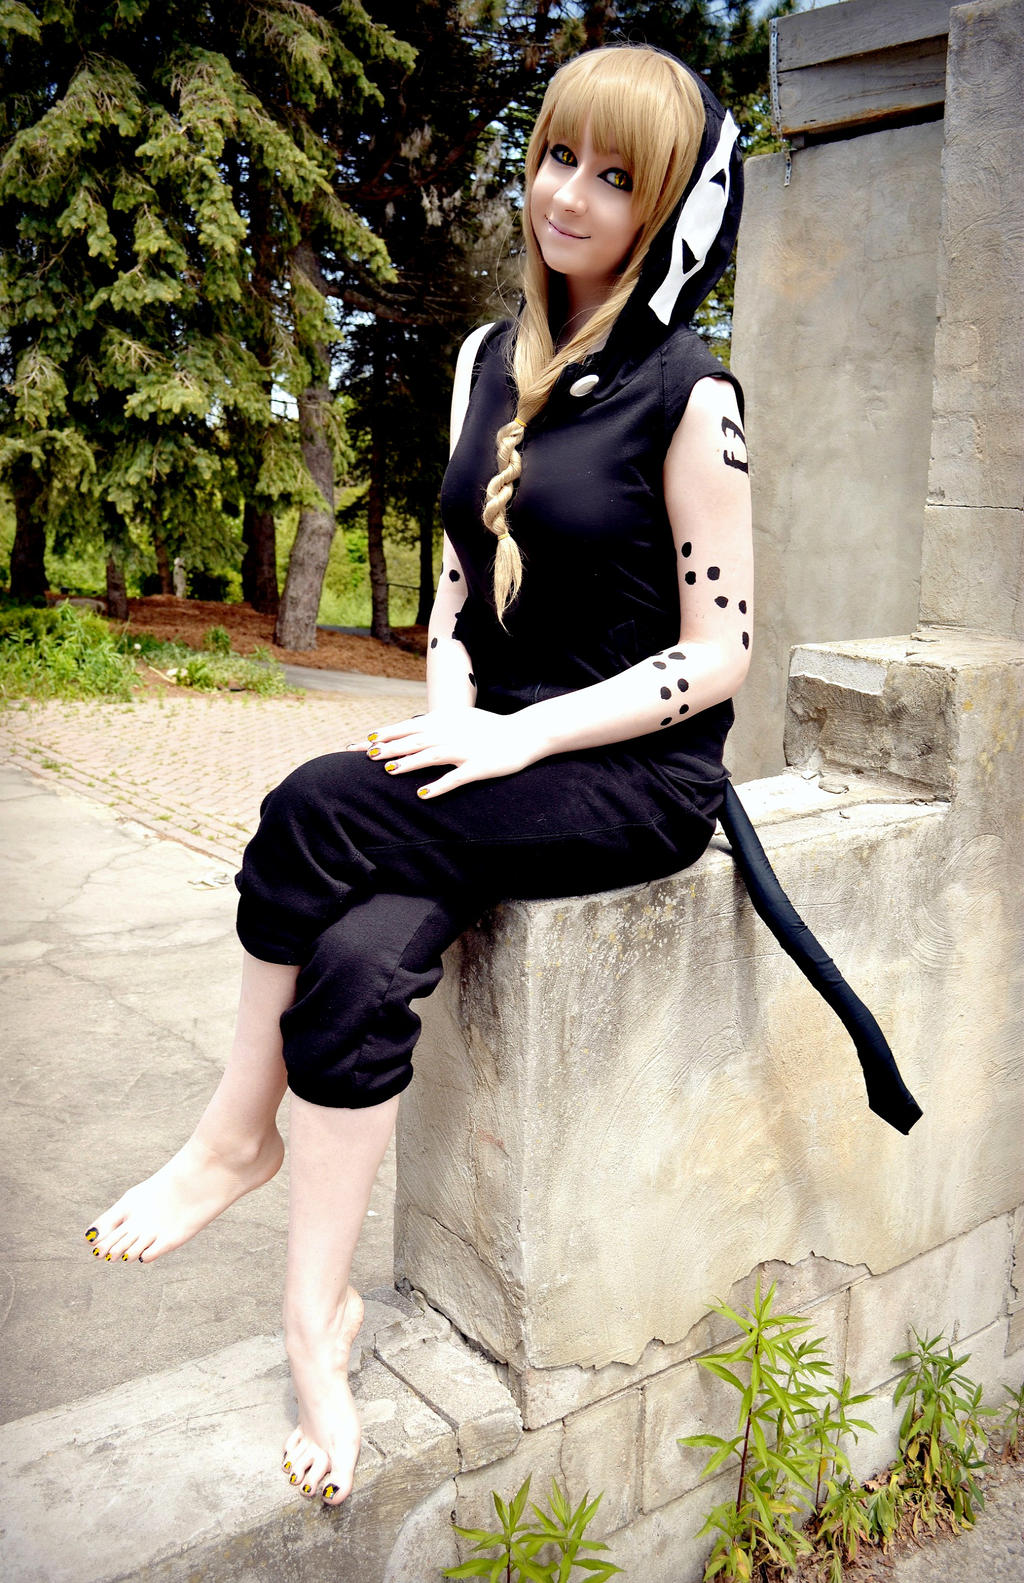 Soul Eater: Antagonist by tipsy-g